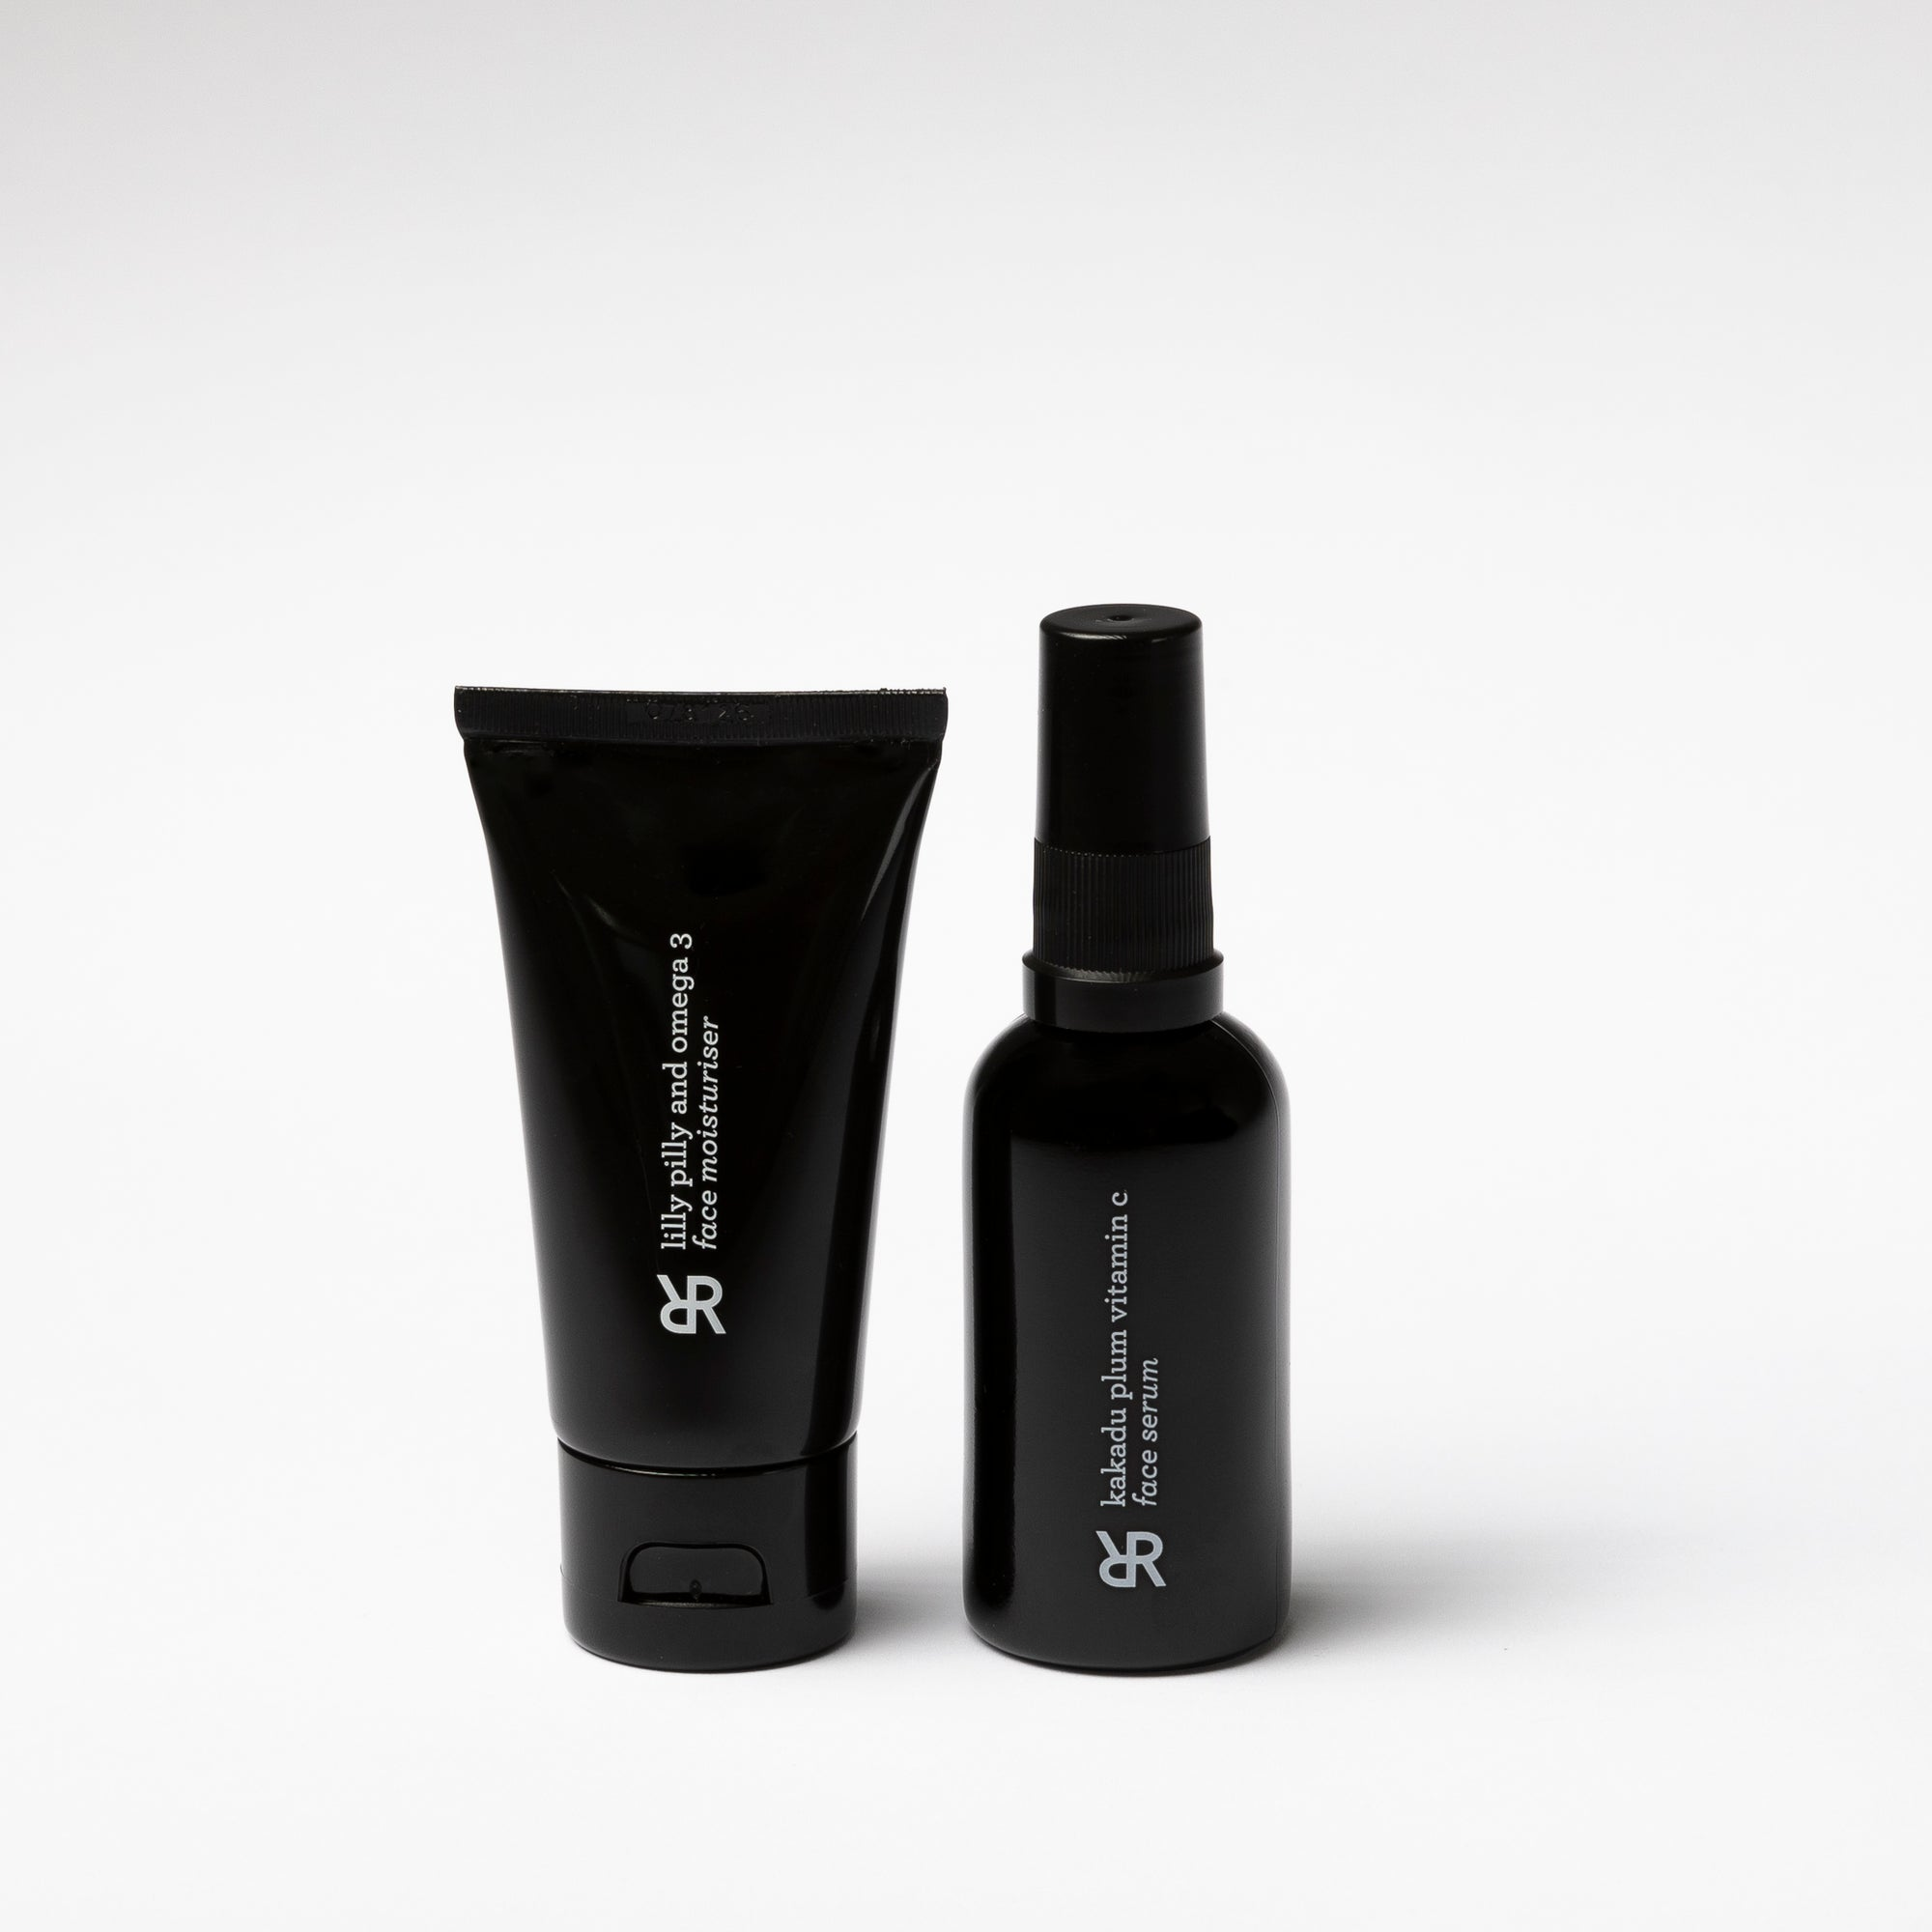 Our two best-sellers in a cost-saving duo set. Paired together to brighten, hydrate and protect the skin. Official Rohr Remedy stockist. Shop with Afterpay.